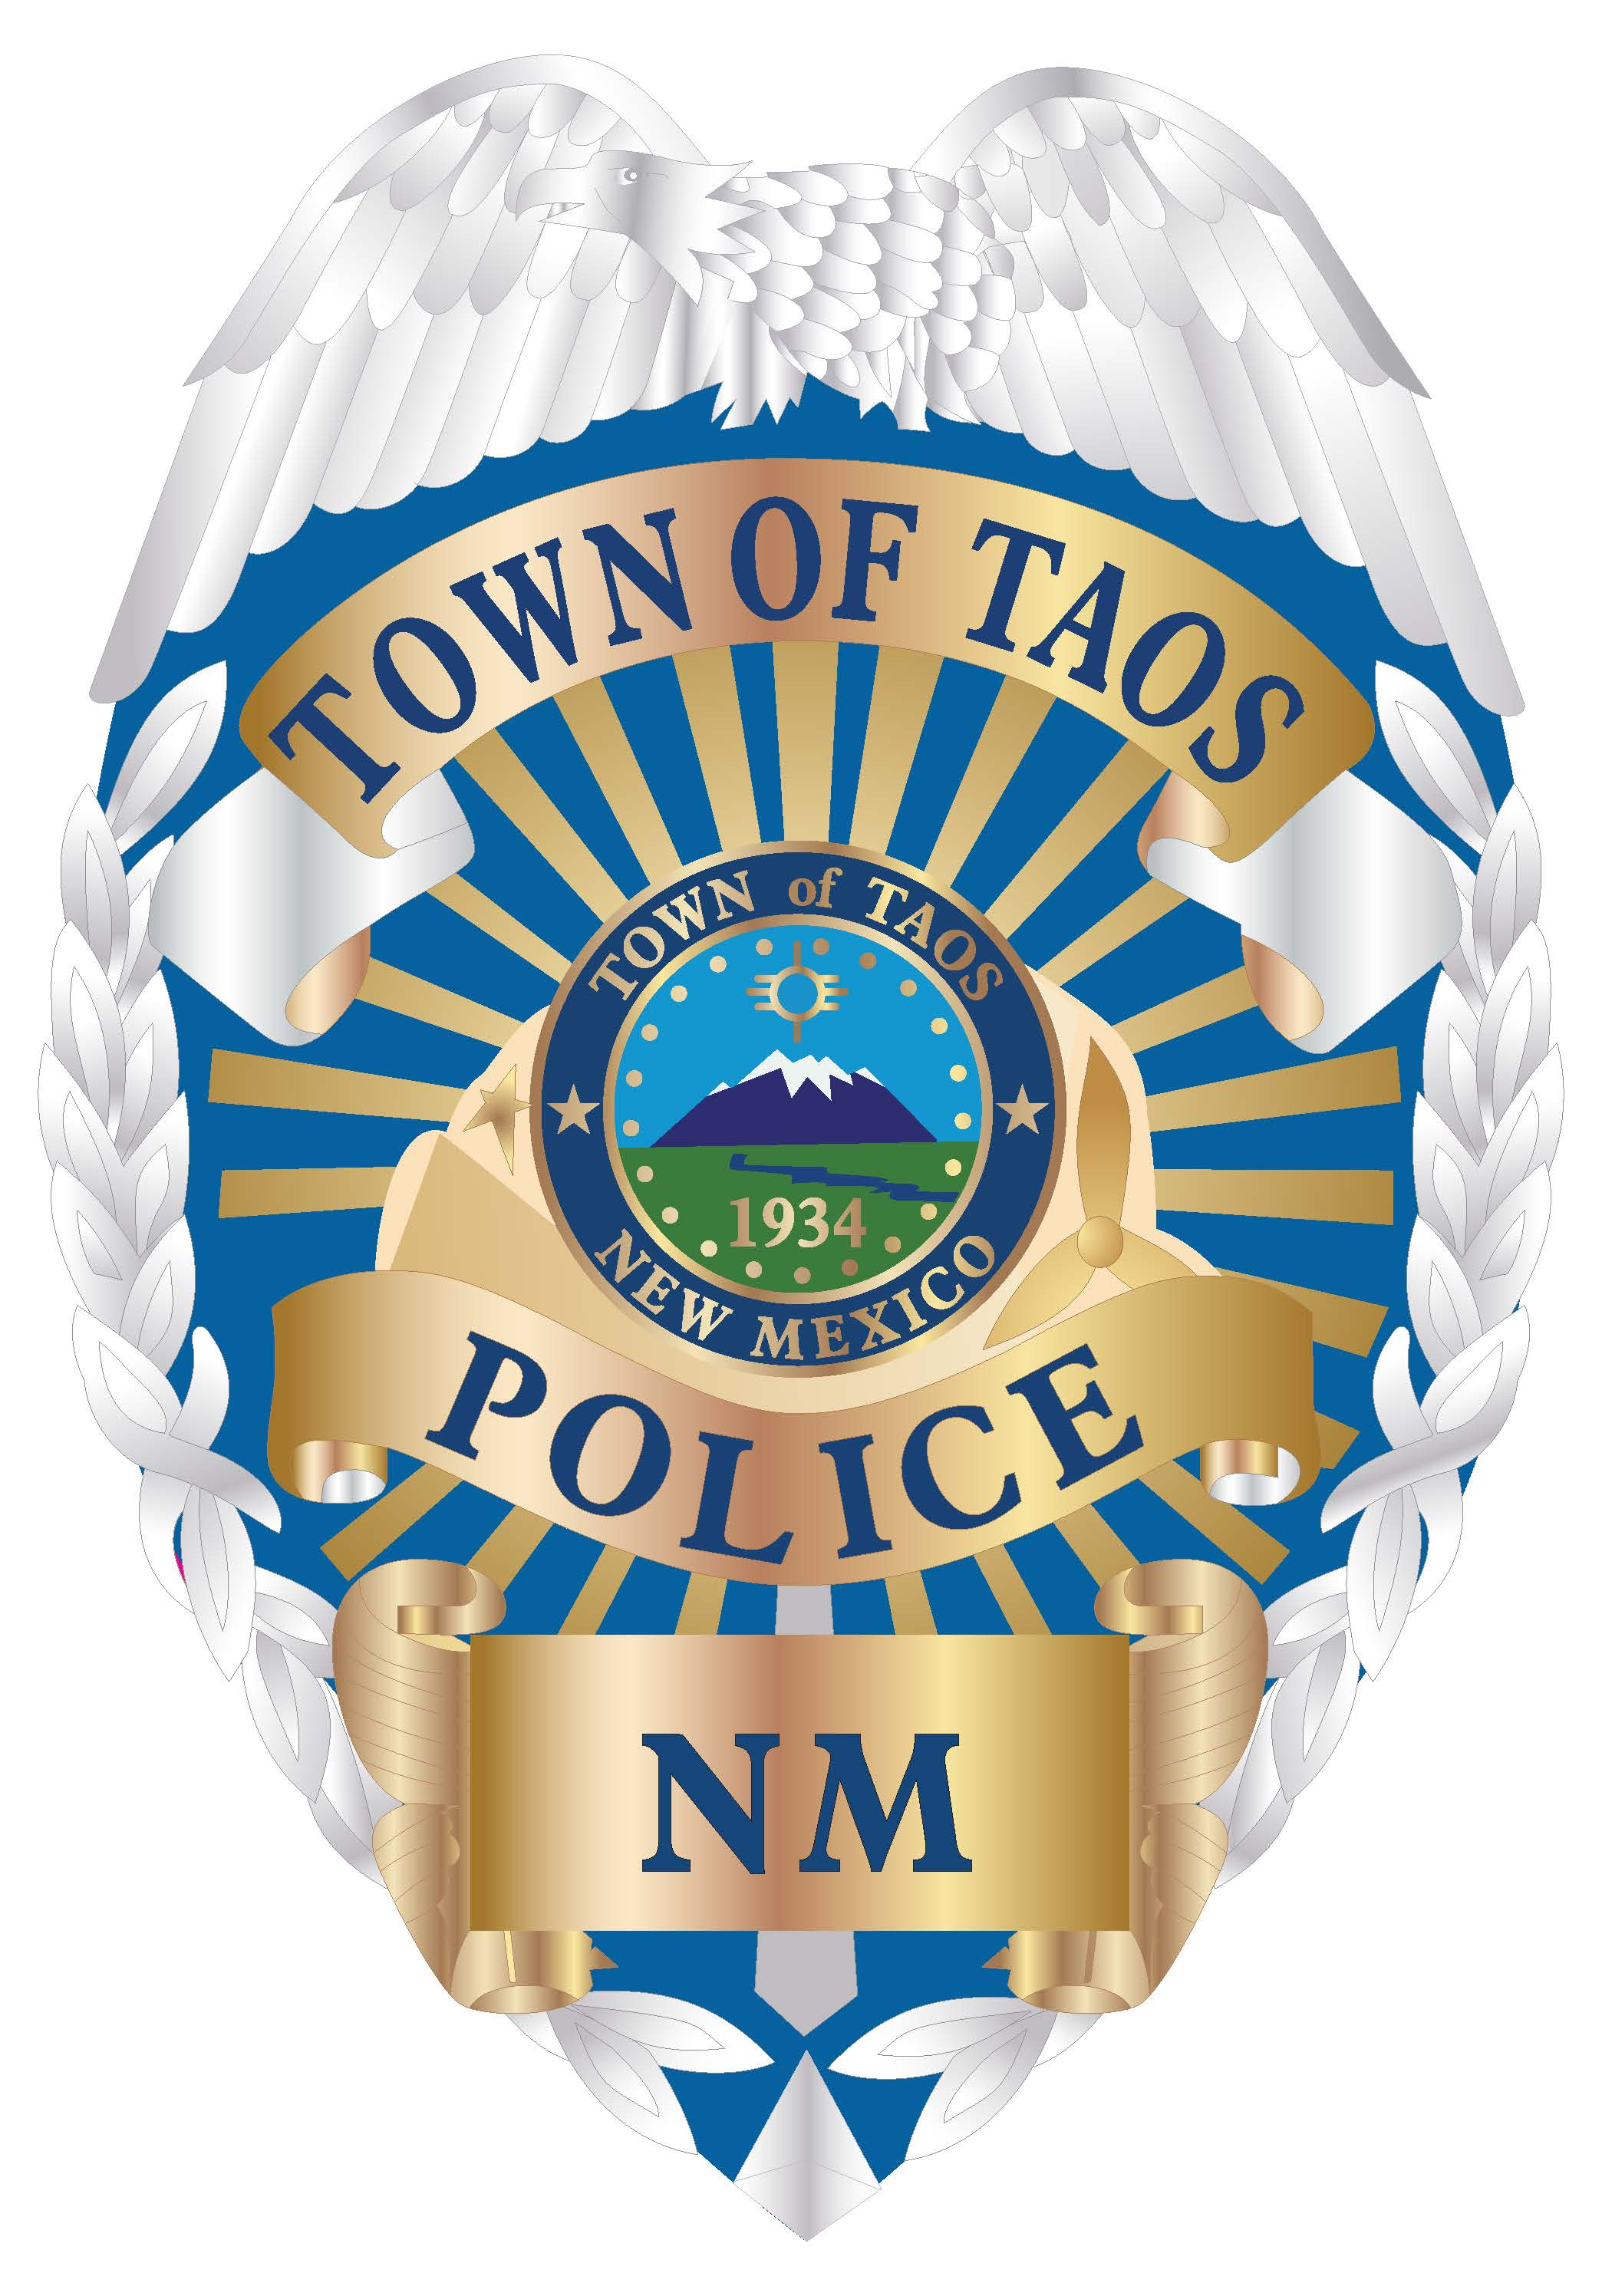 TAOS BADGE